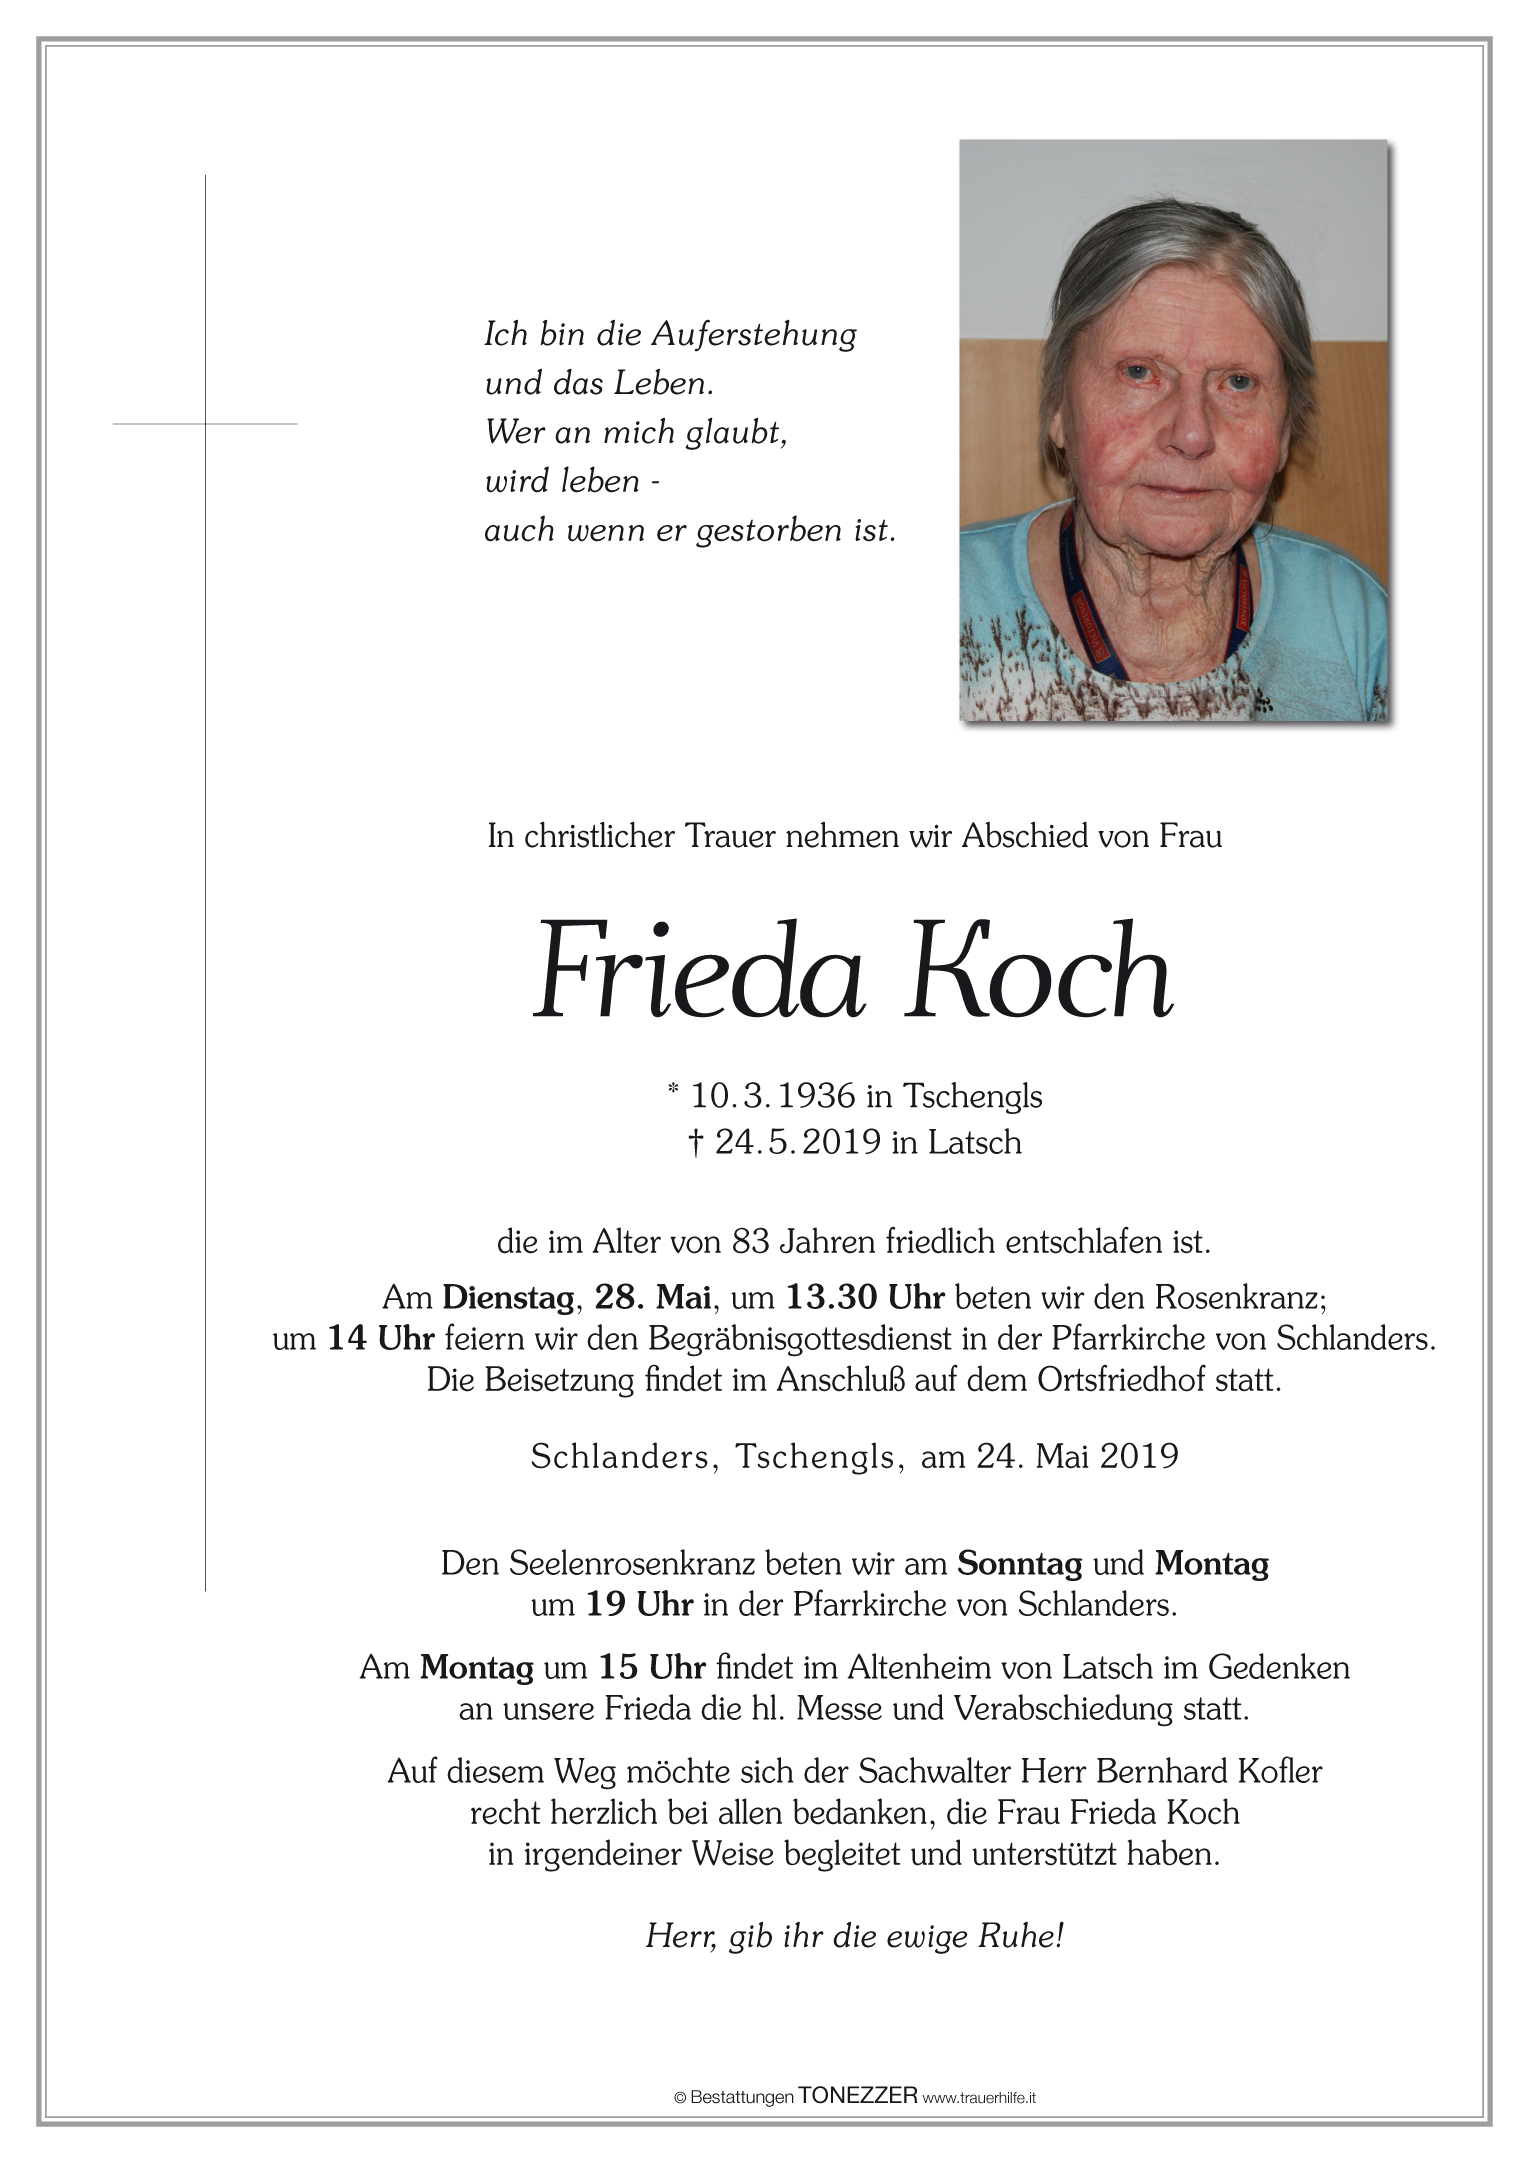 Frieda Koch